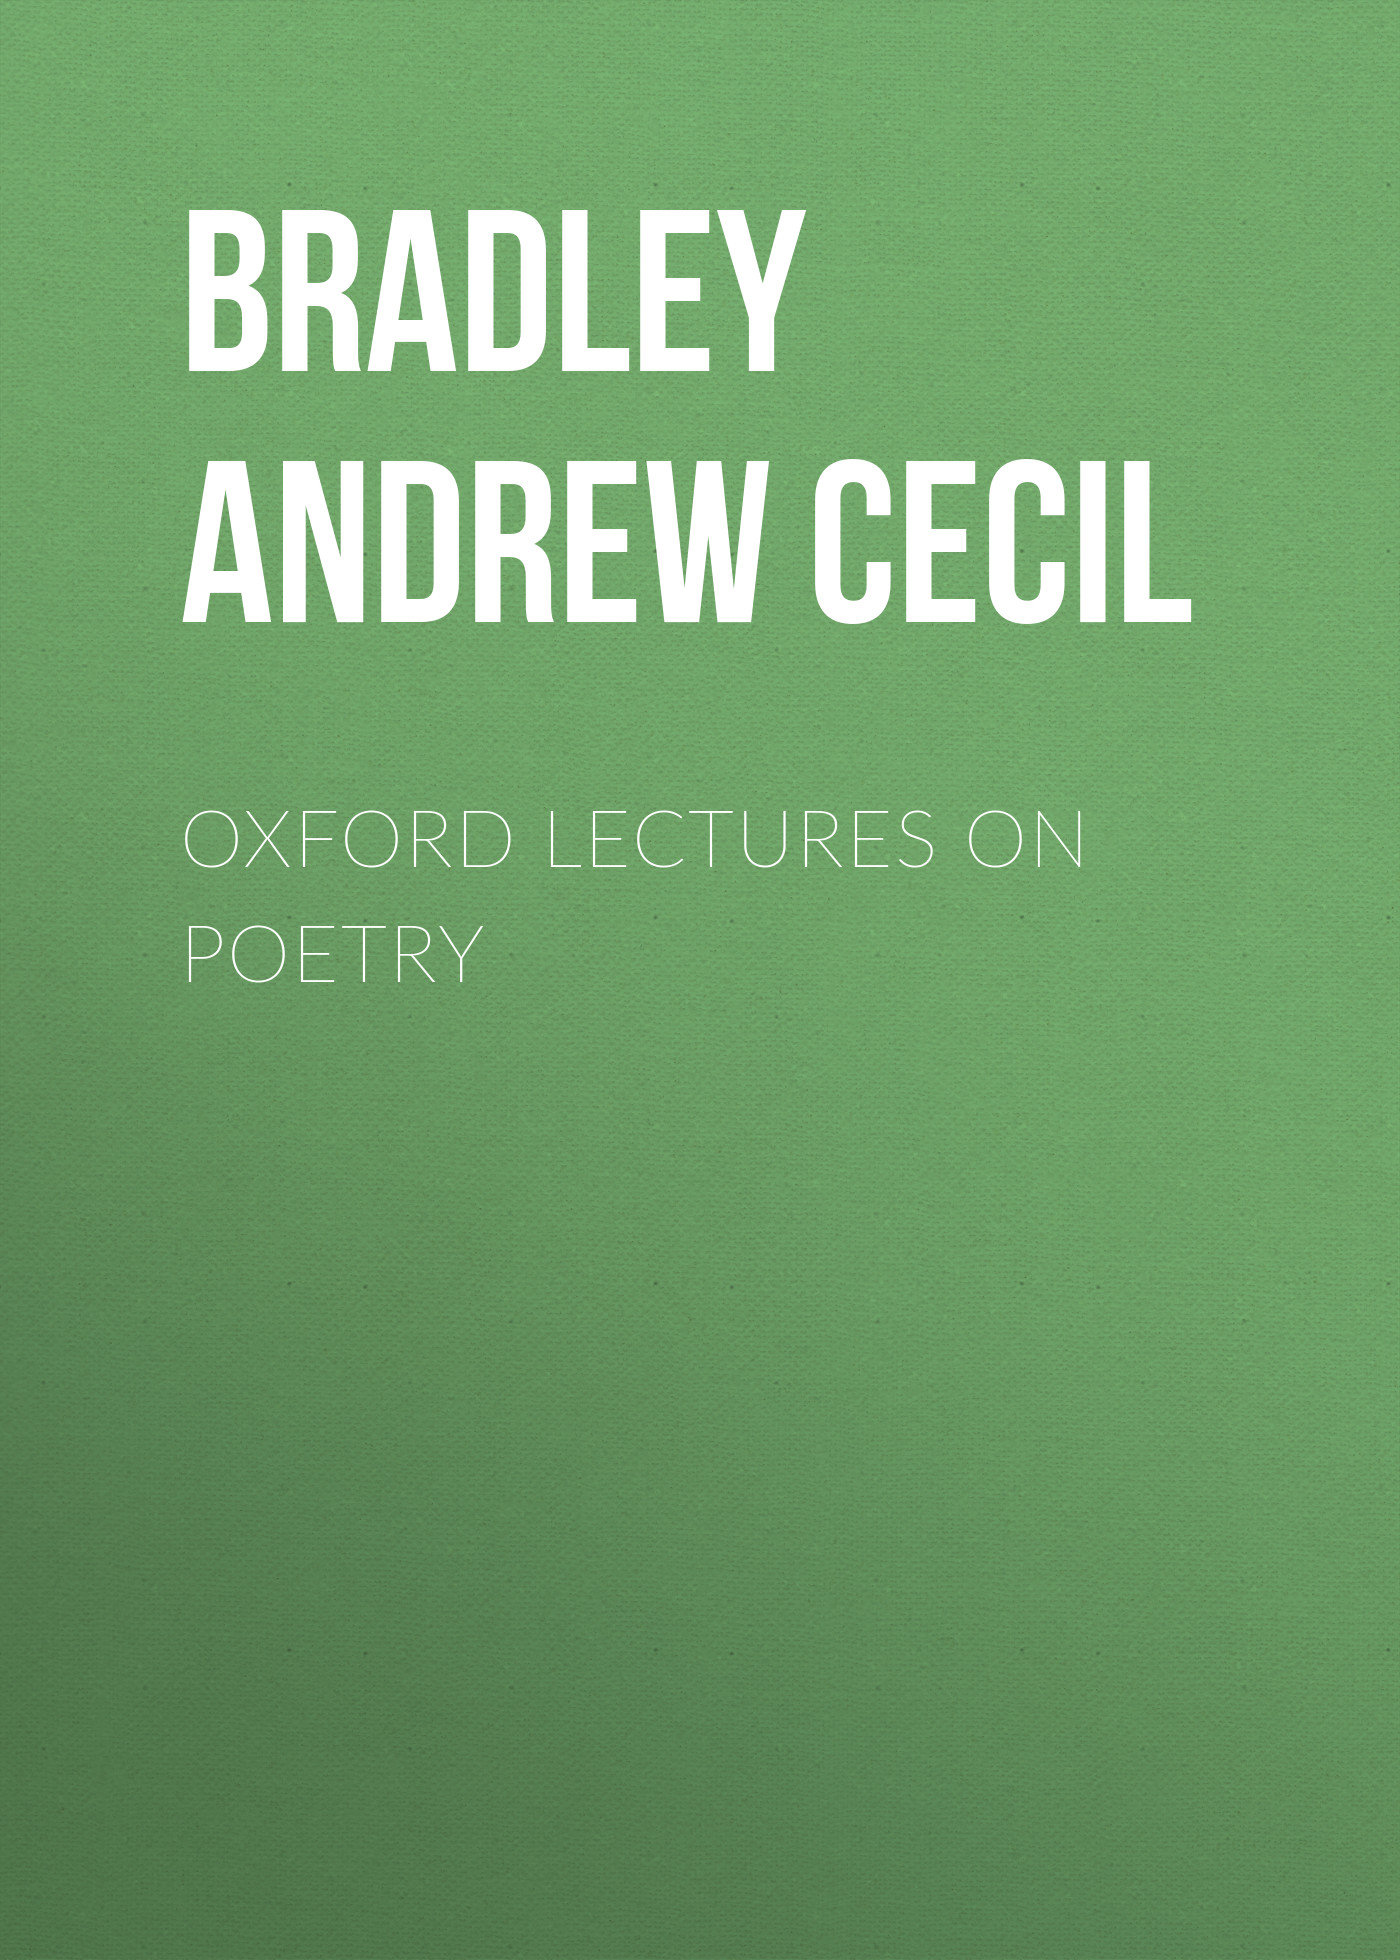 Bradley Andrew Cecil Oxford Lectures on Poetry panin ivan lectures on russian literature pushkin gogol turgenef tolstoy